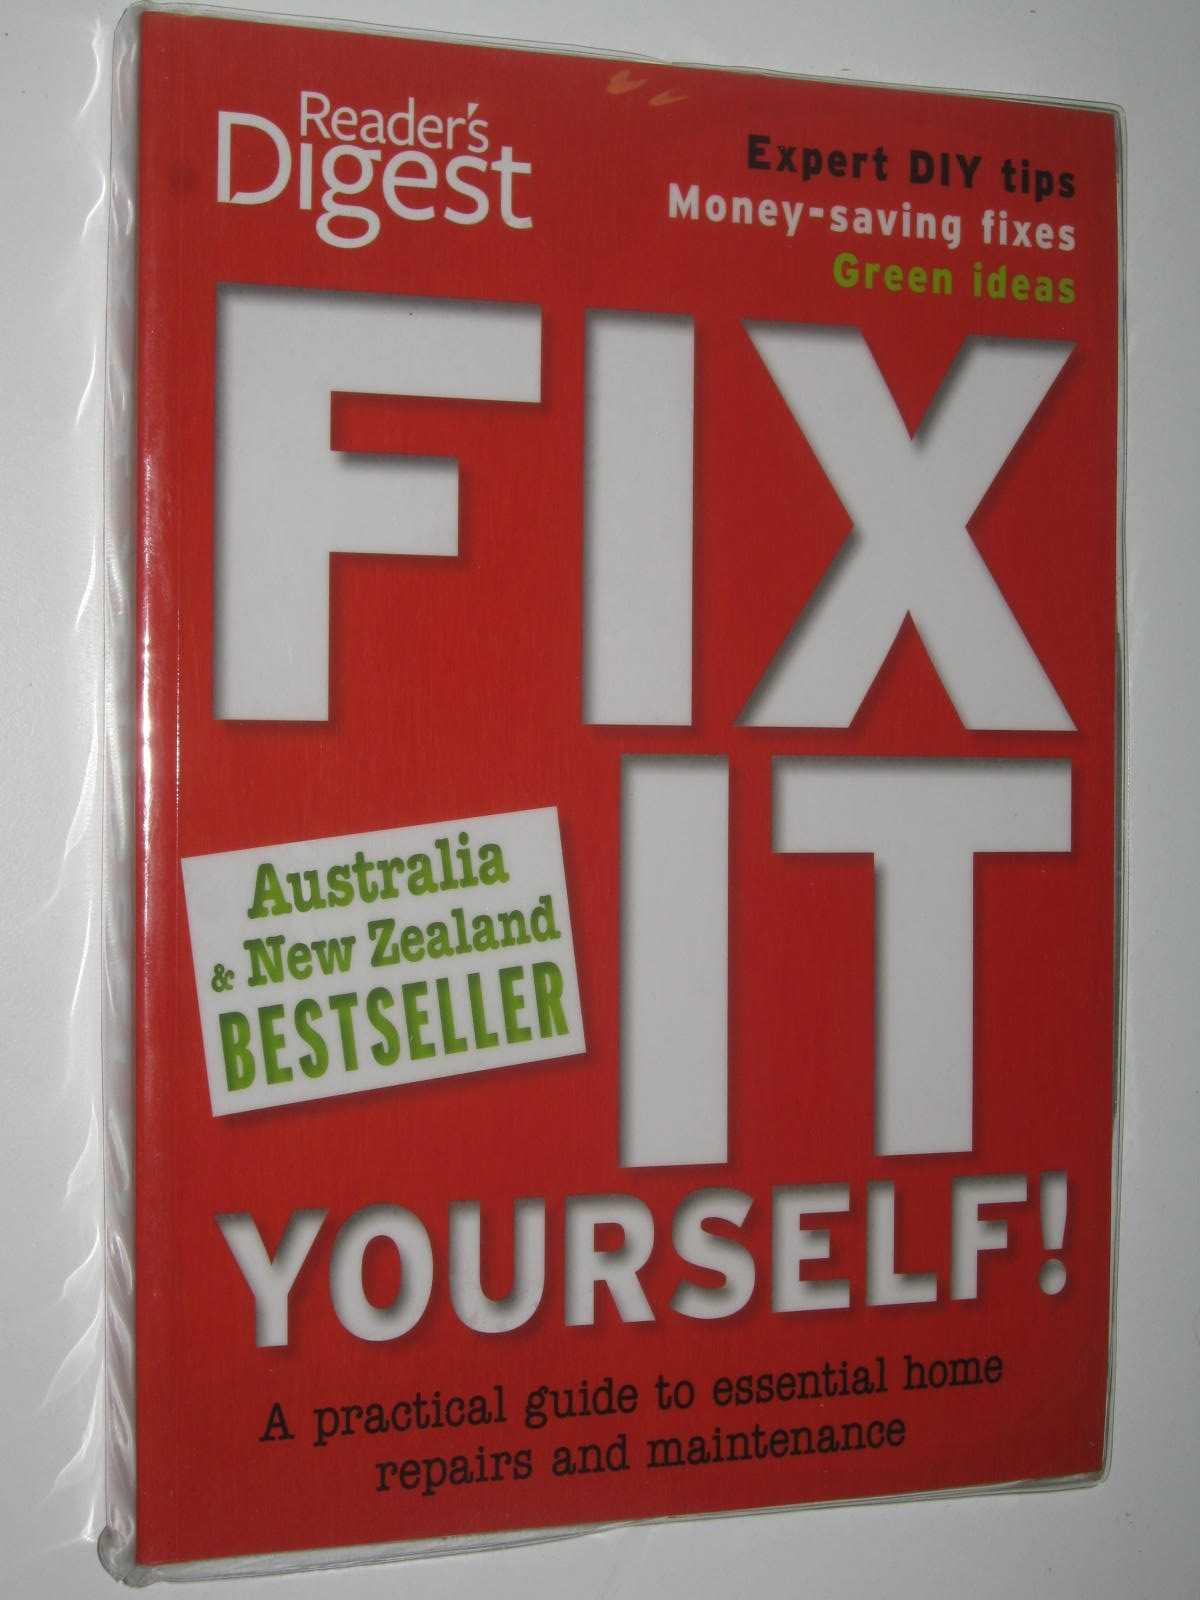 Image for Reader's Digest Fix It Yourself ! : A Practical Guide To Essential home Repairs And Maintenance